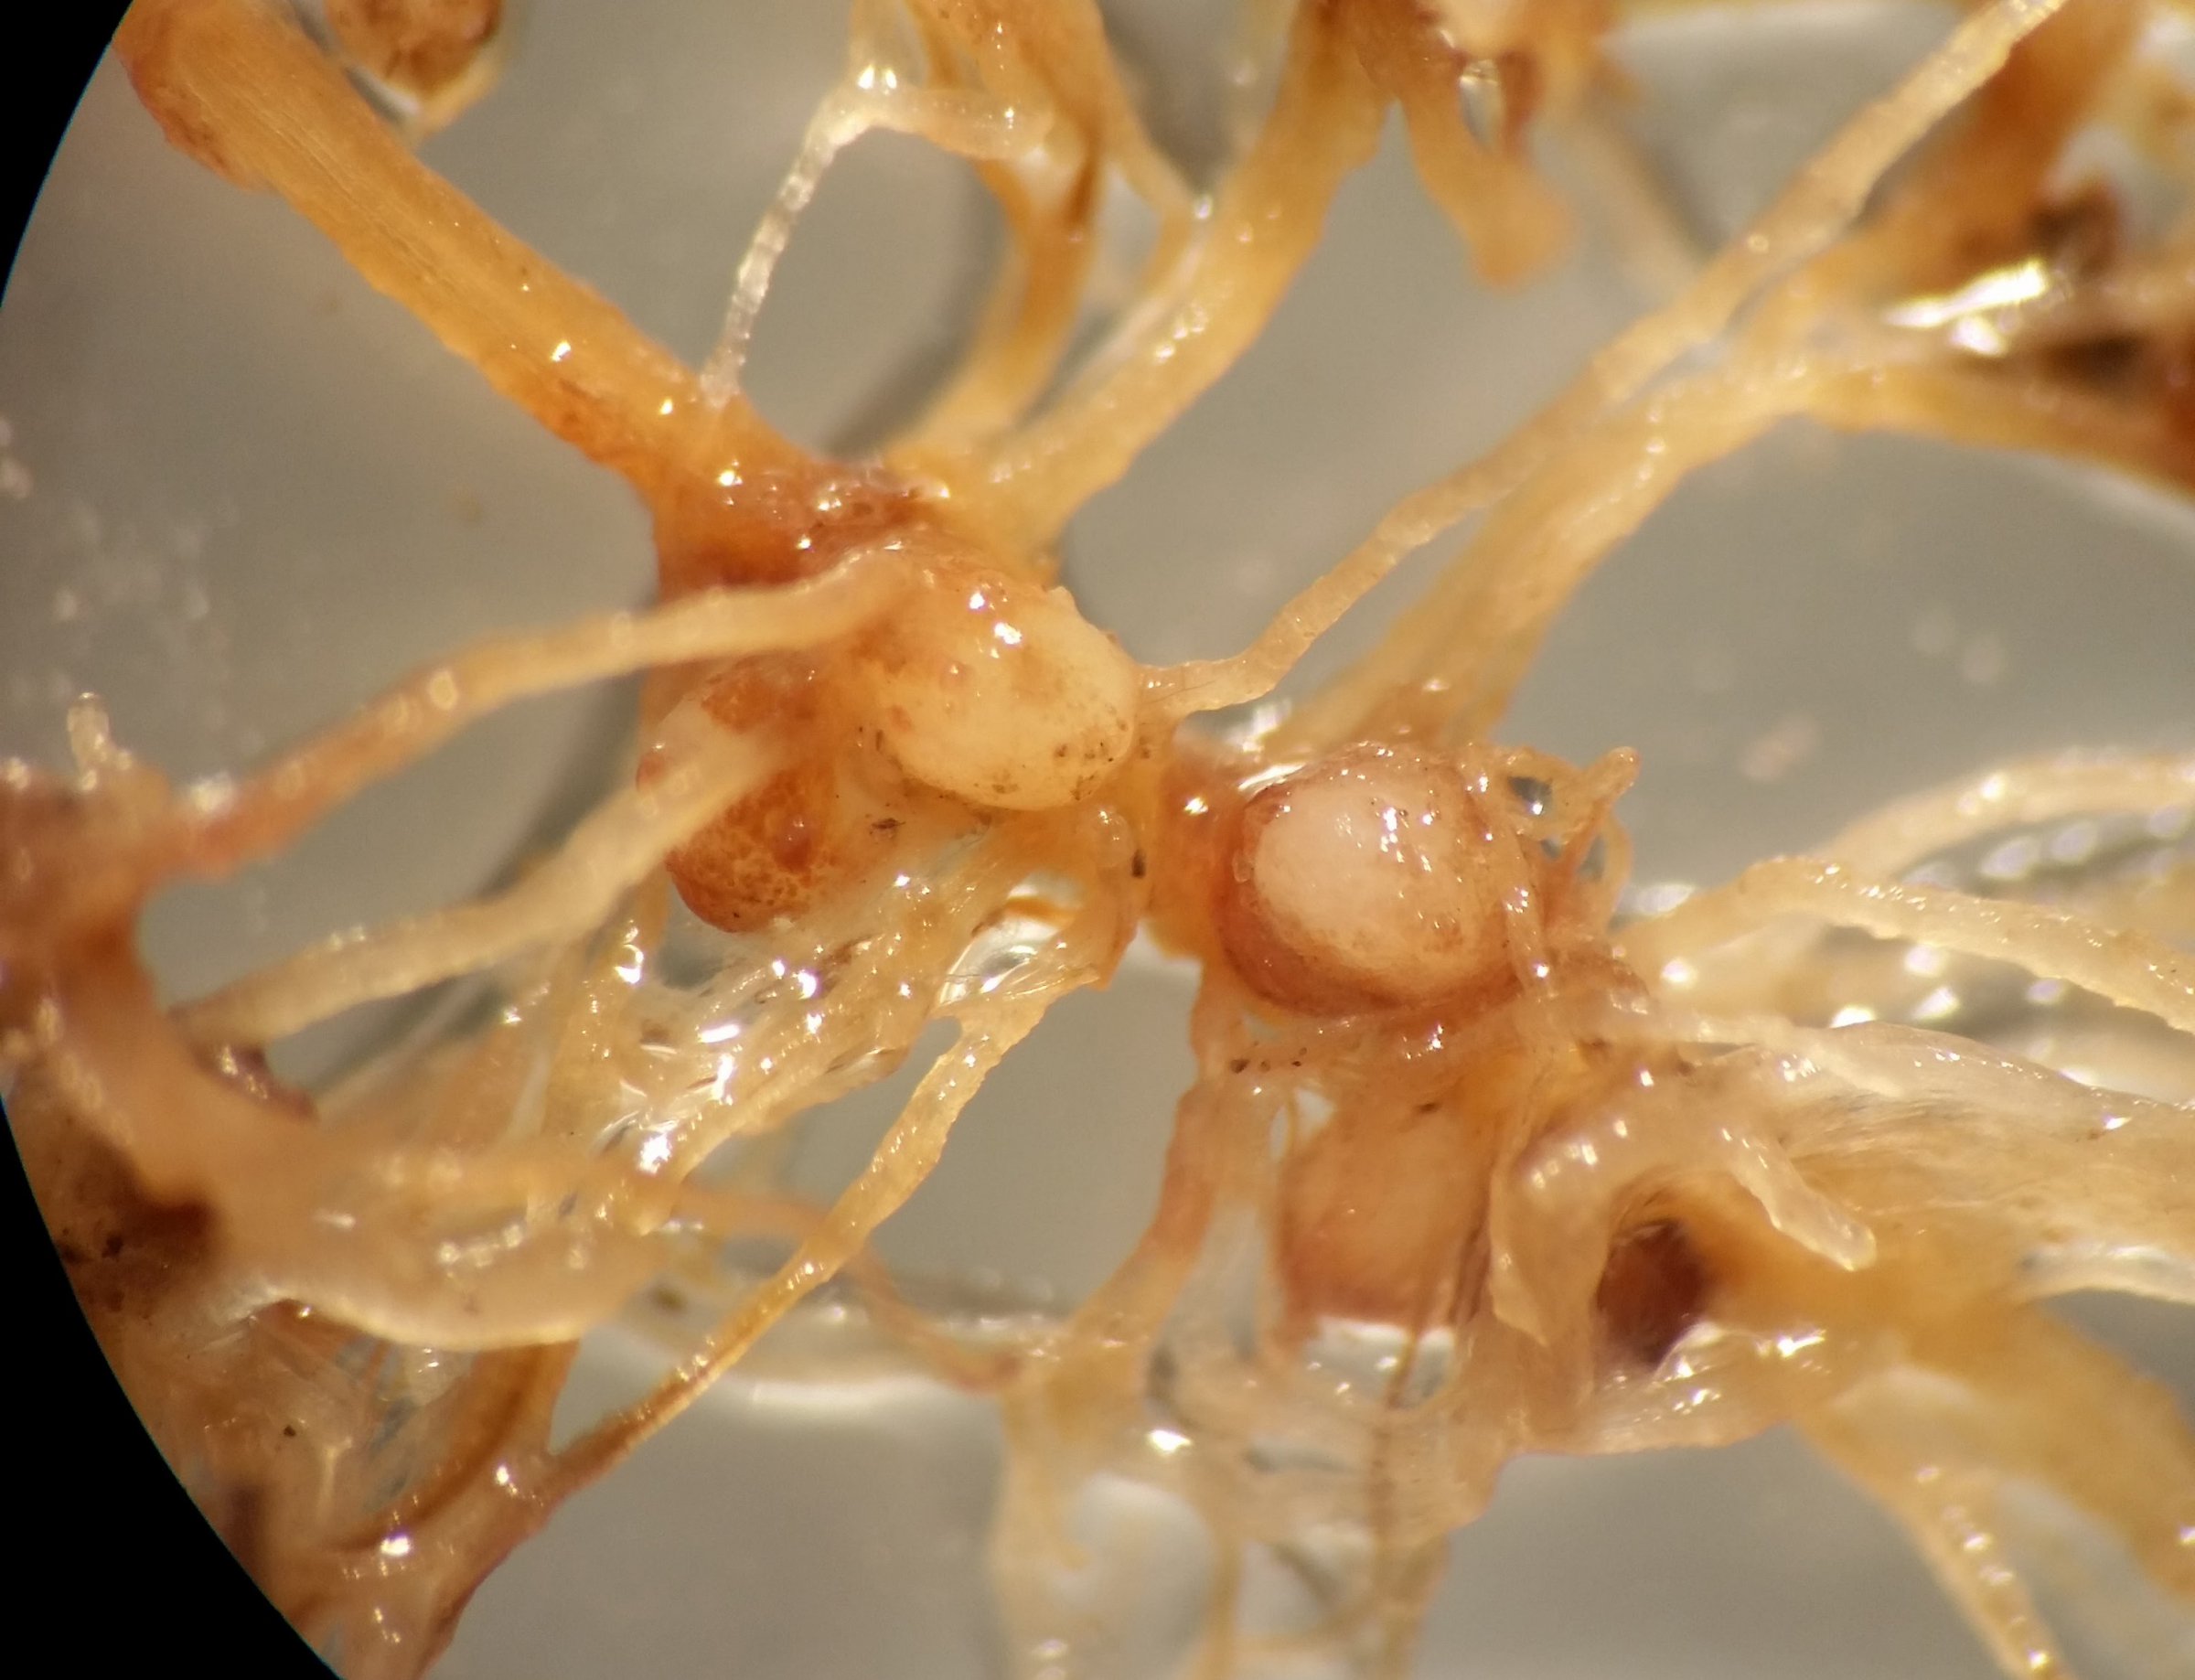 Cereal cyst nematode females attached to roots.